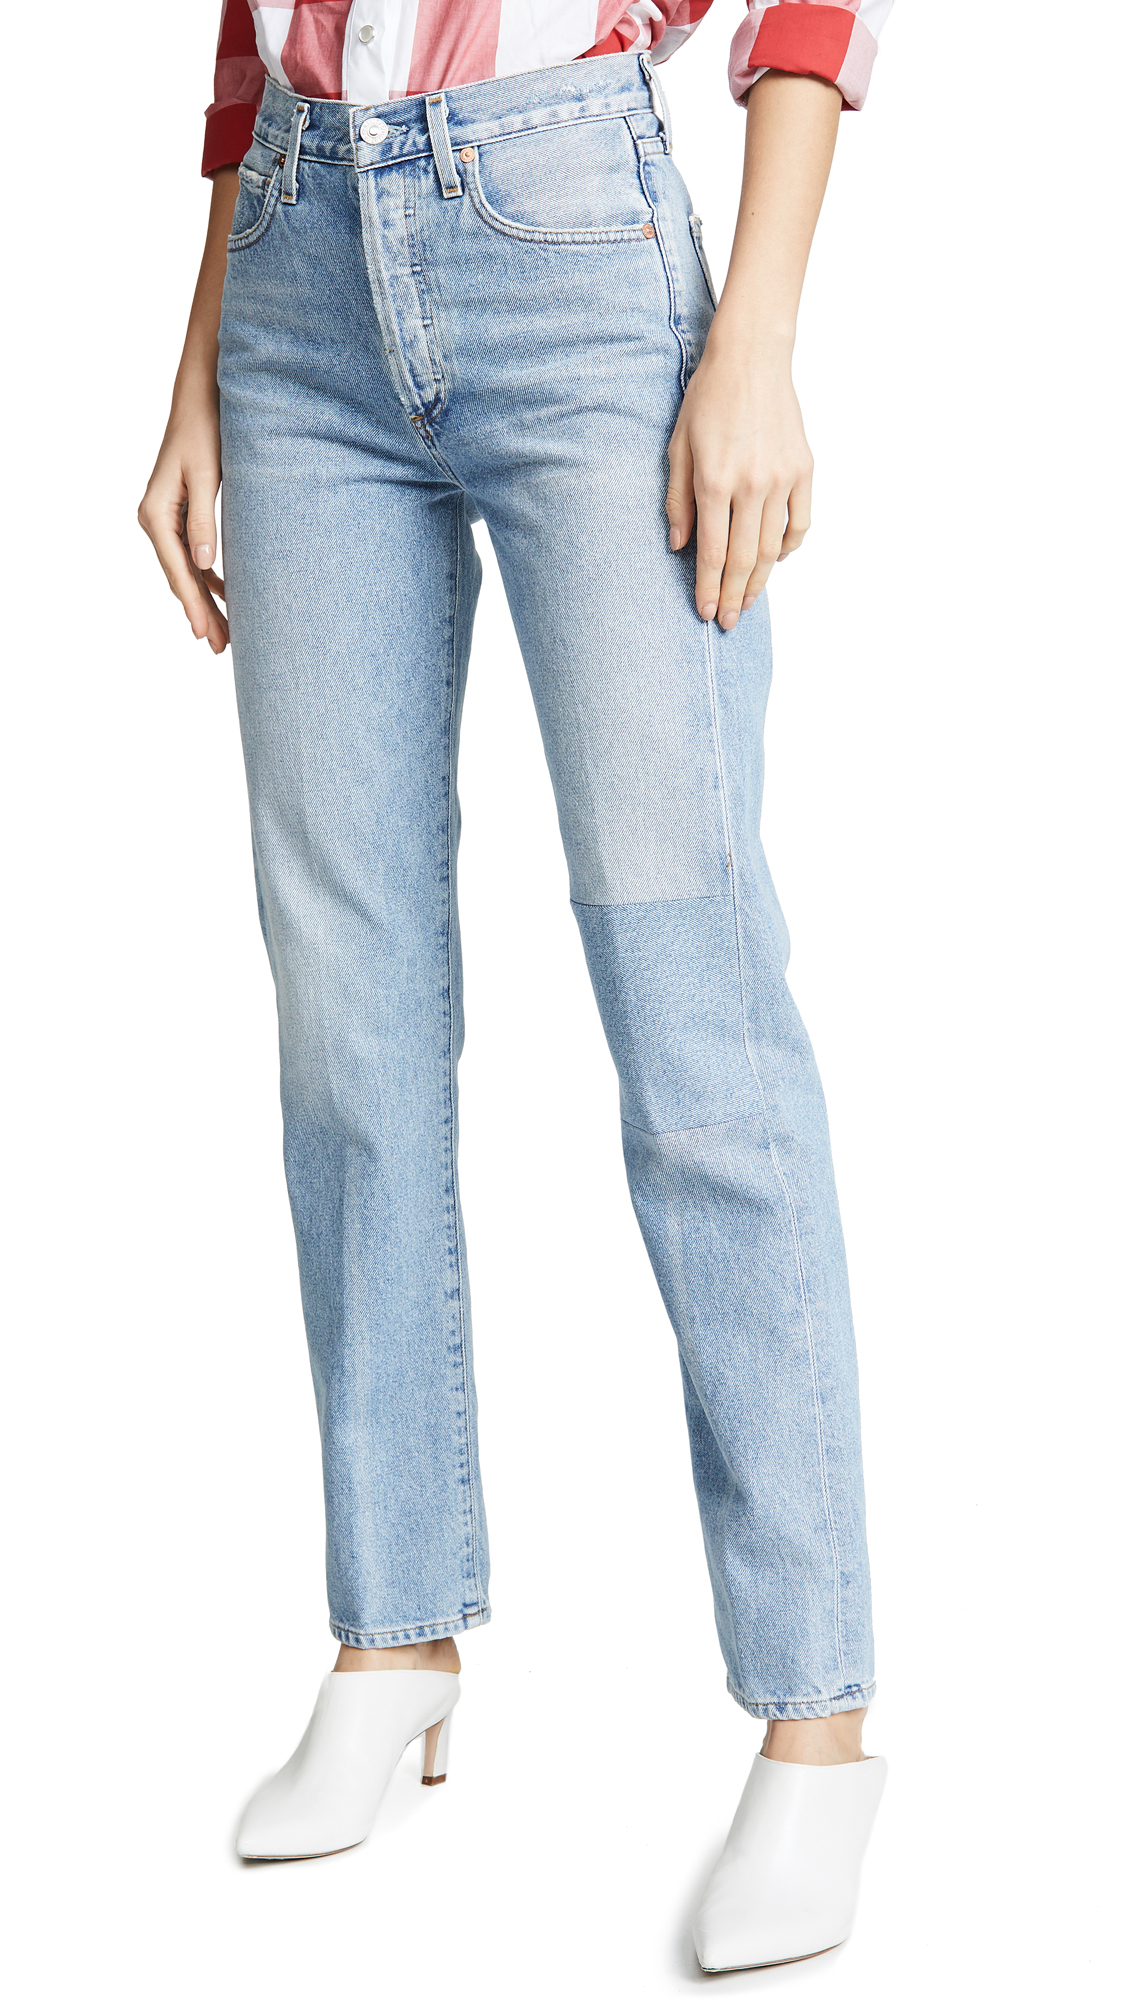 Citizens of Humanity Campbell High Rise Relaxed Straight Jeans - Render